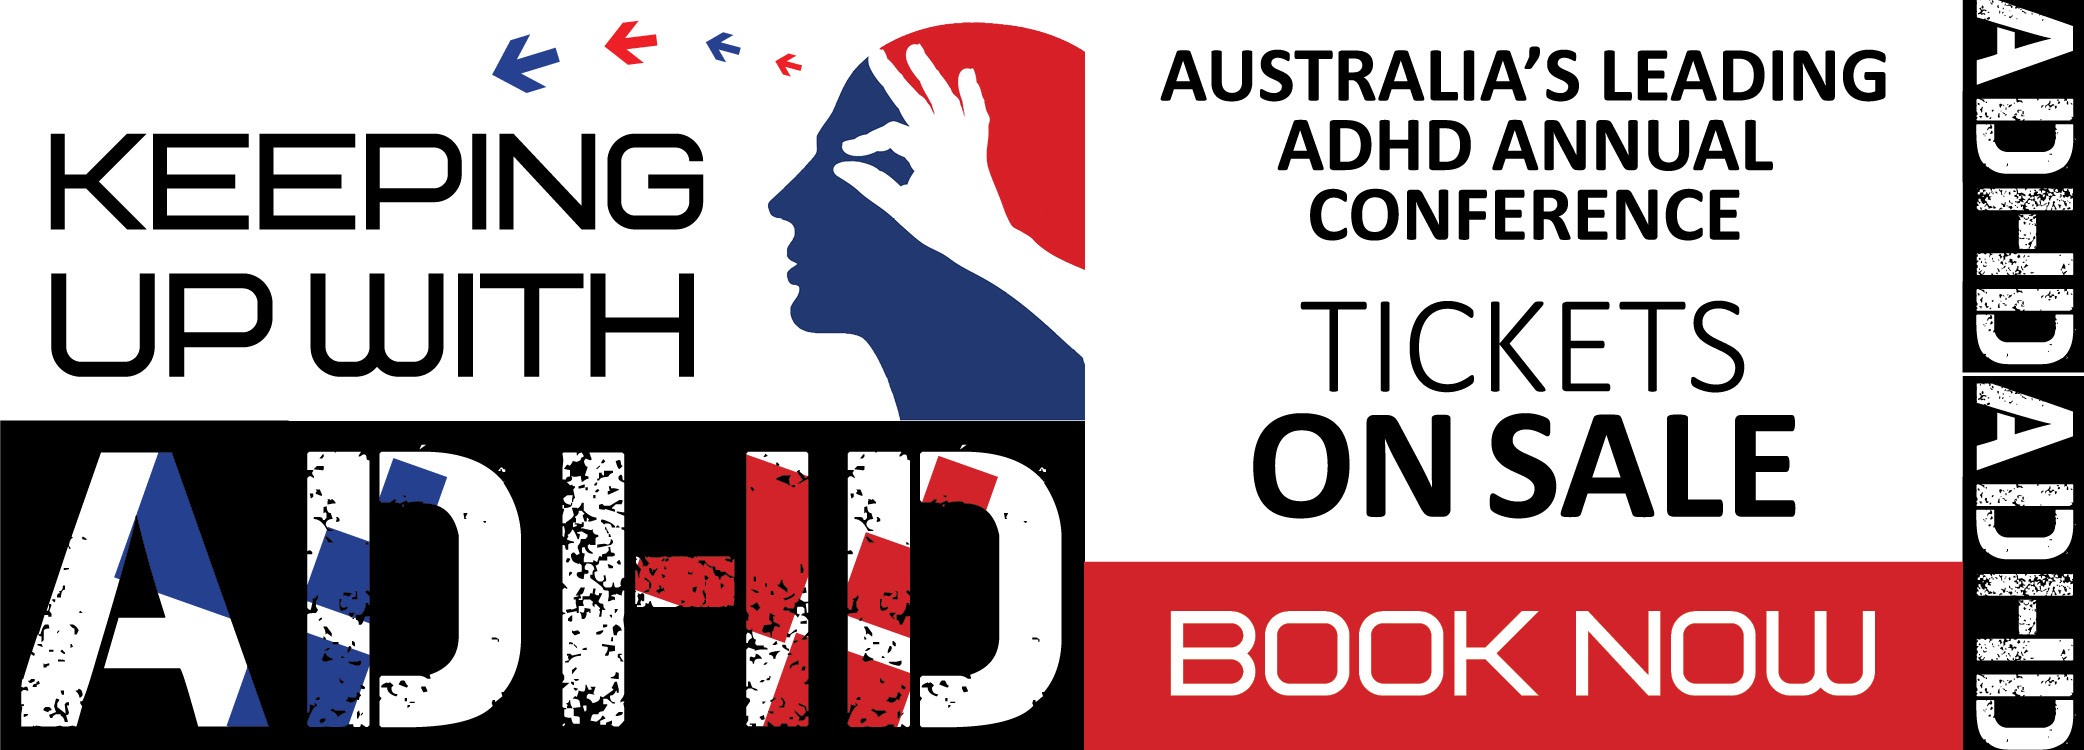 ADHD Annual Conference 2015